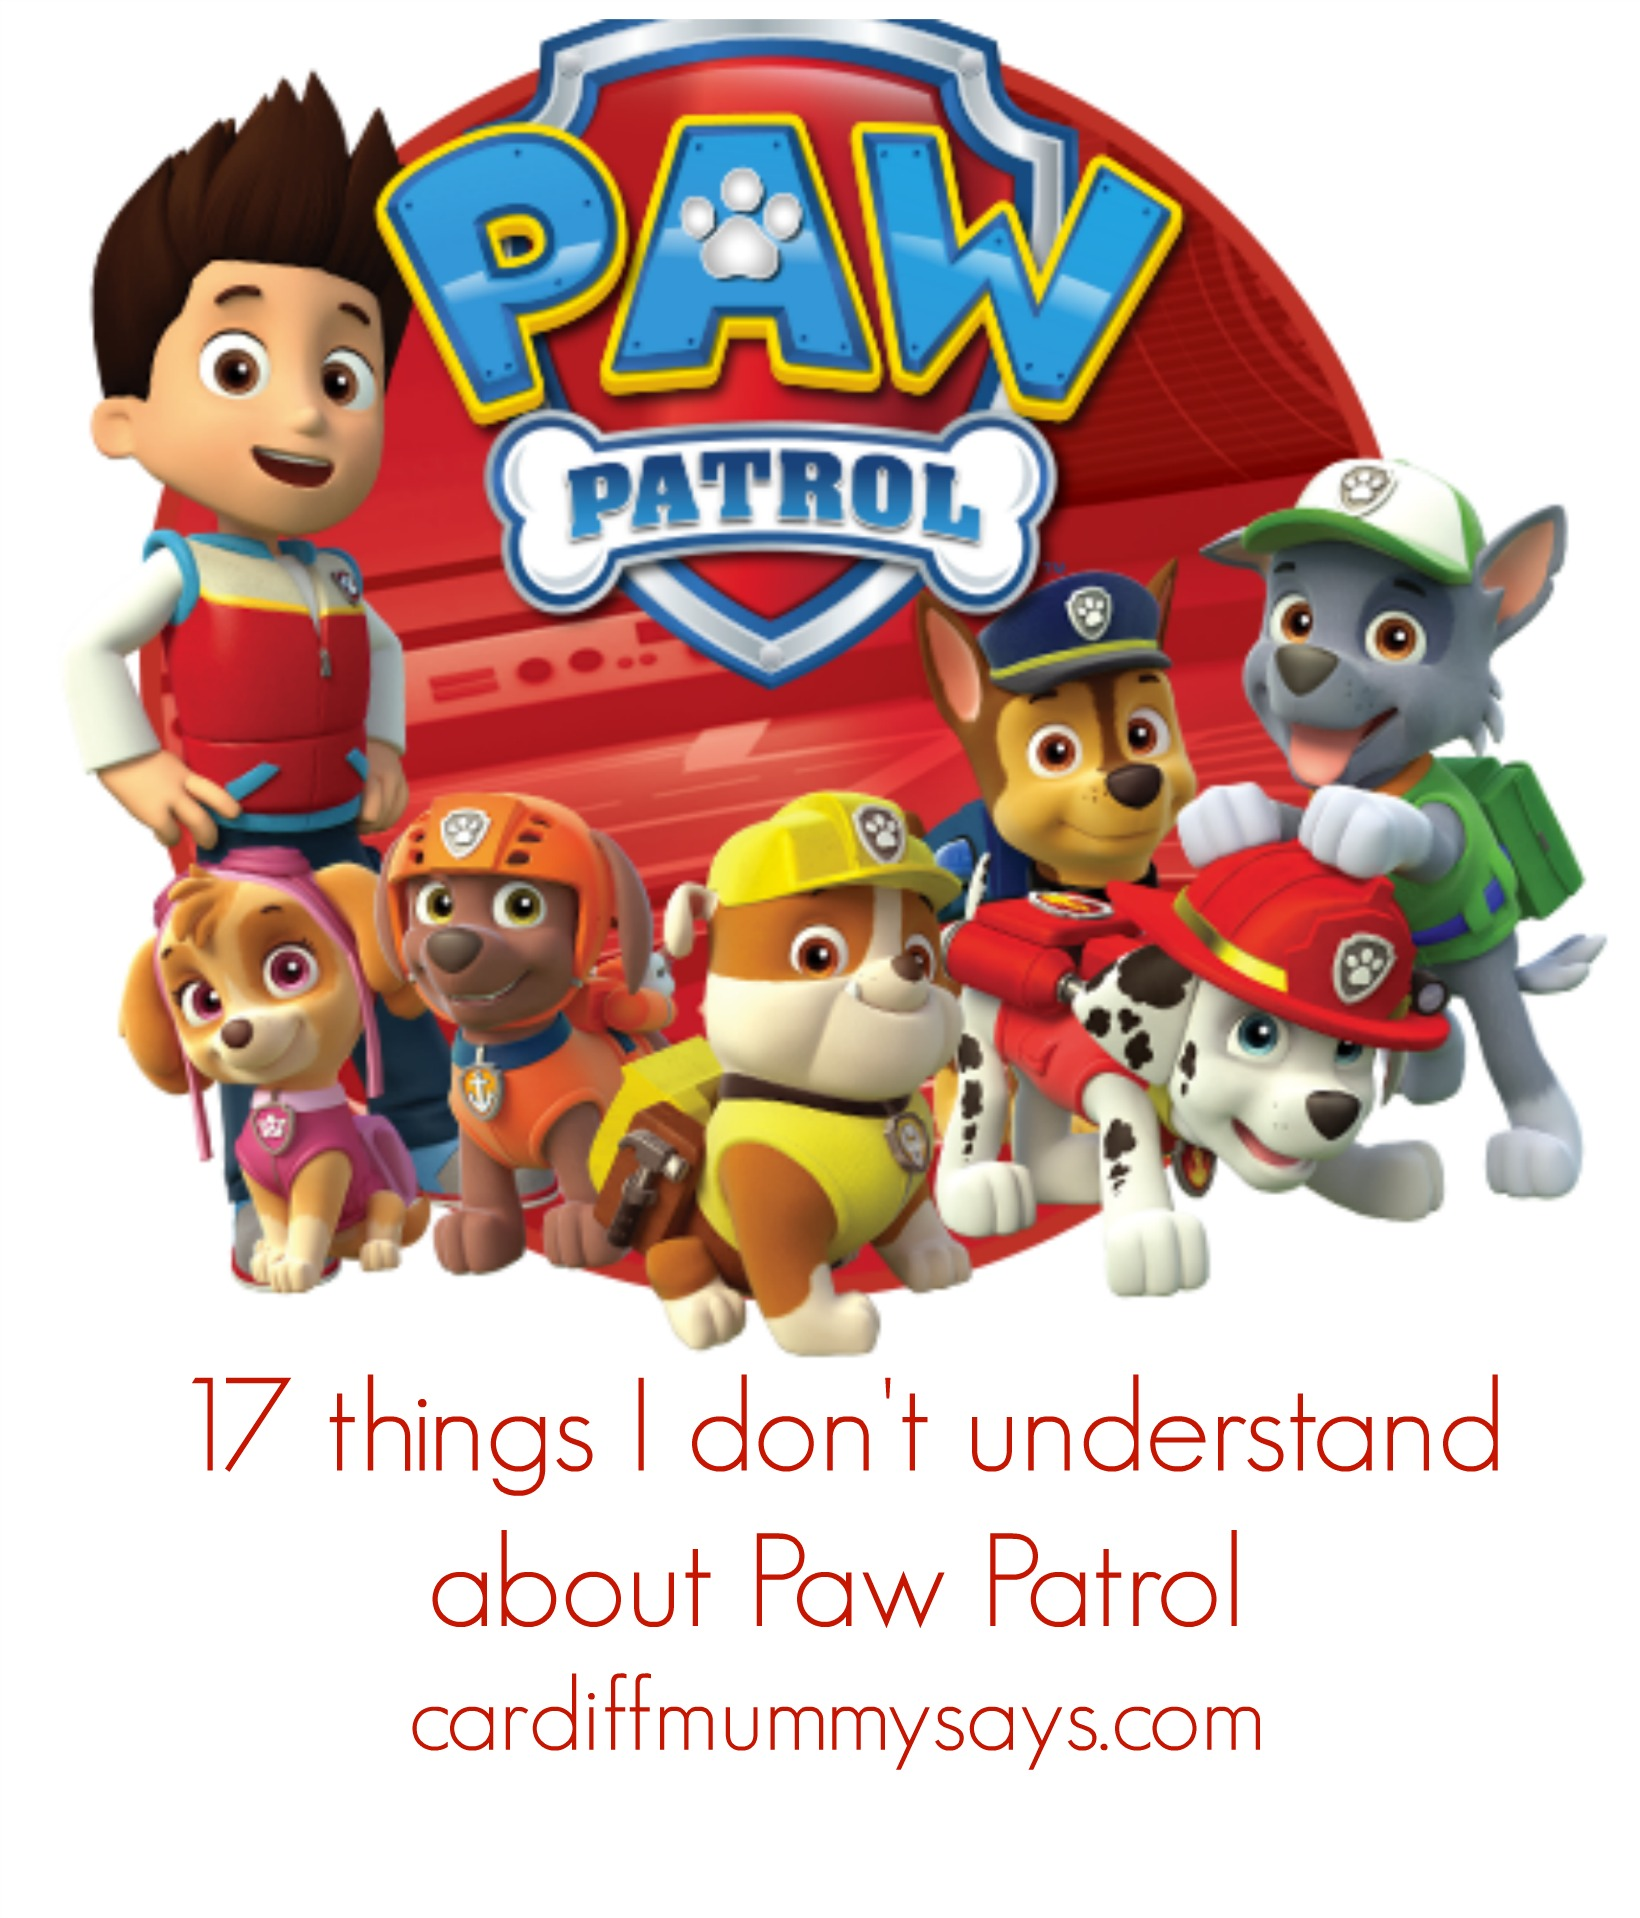 17 things I don't understand about Paw Patrol - Cardiff Mummy